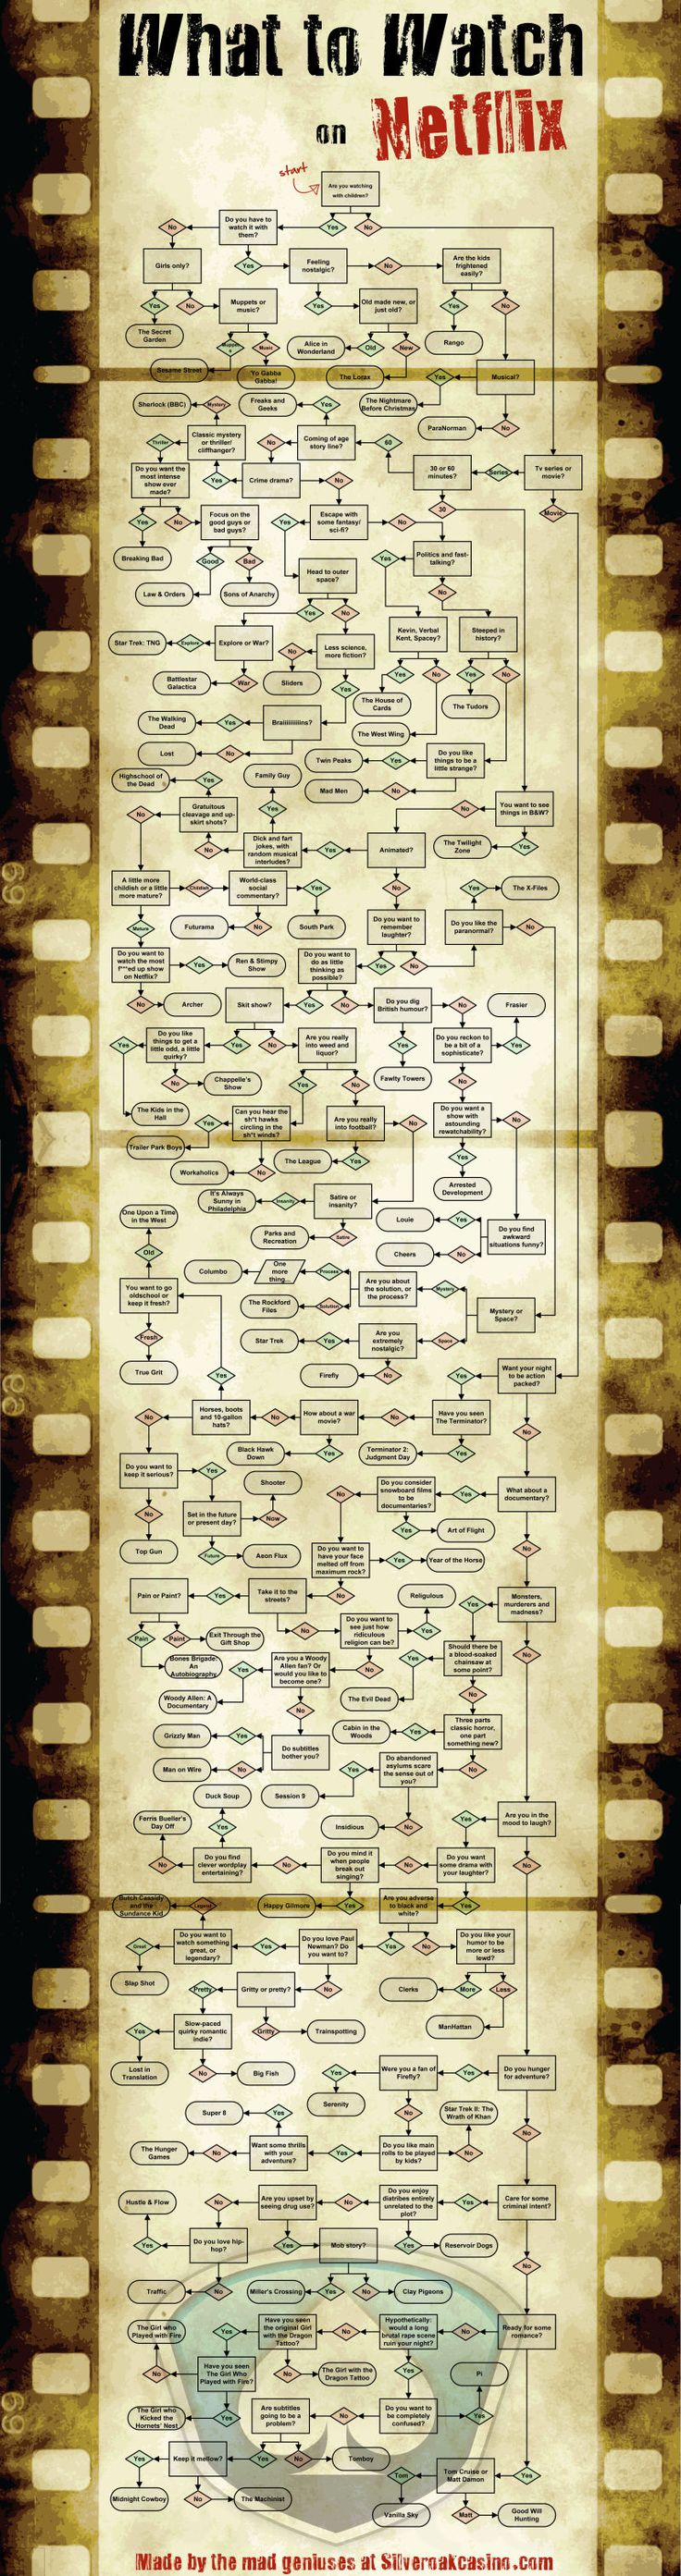 This Genius Netflix Flowchart Will Tell You Exactly What to Watch